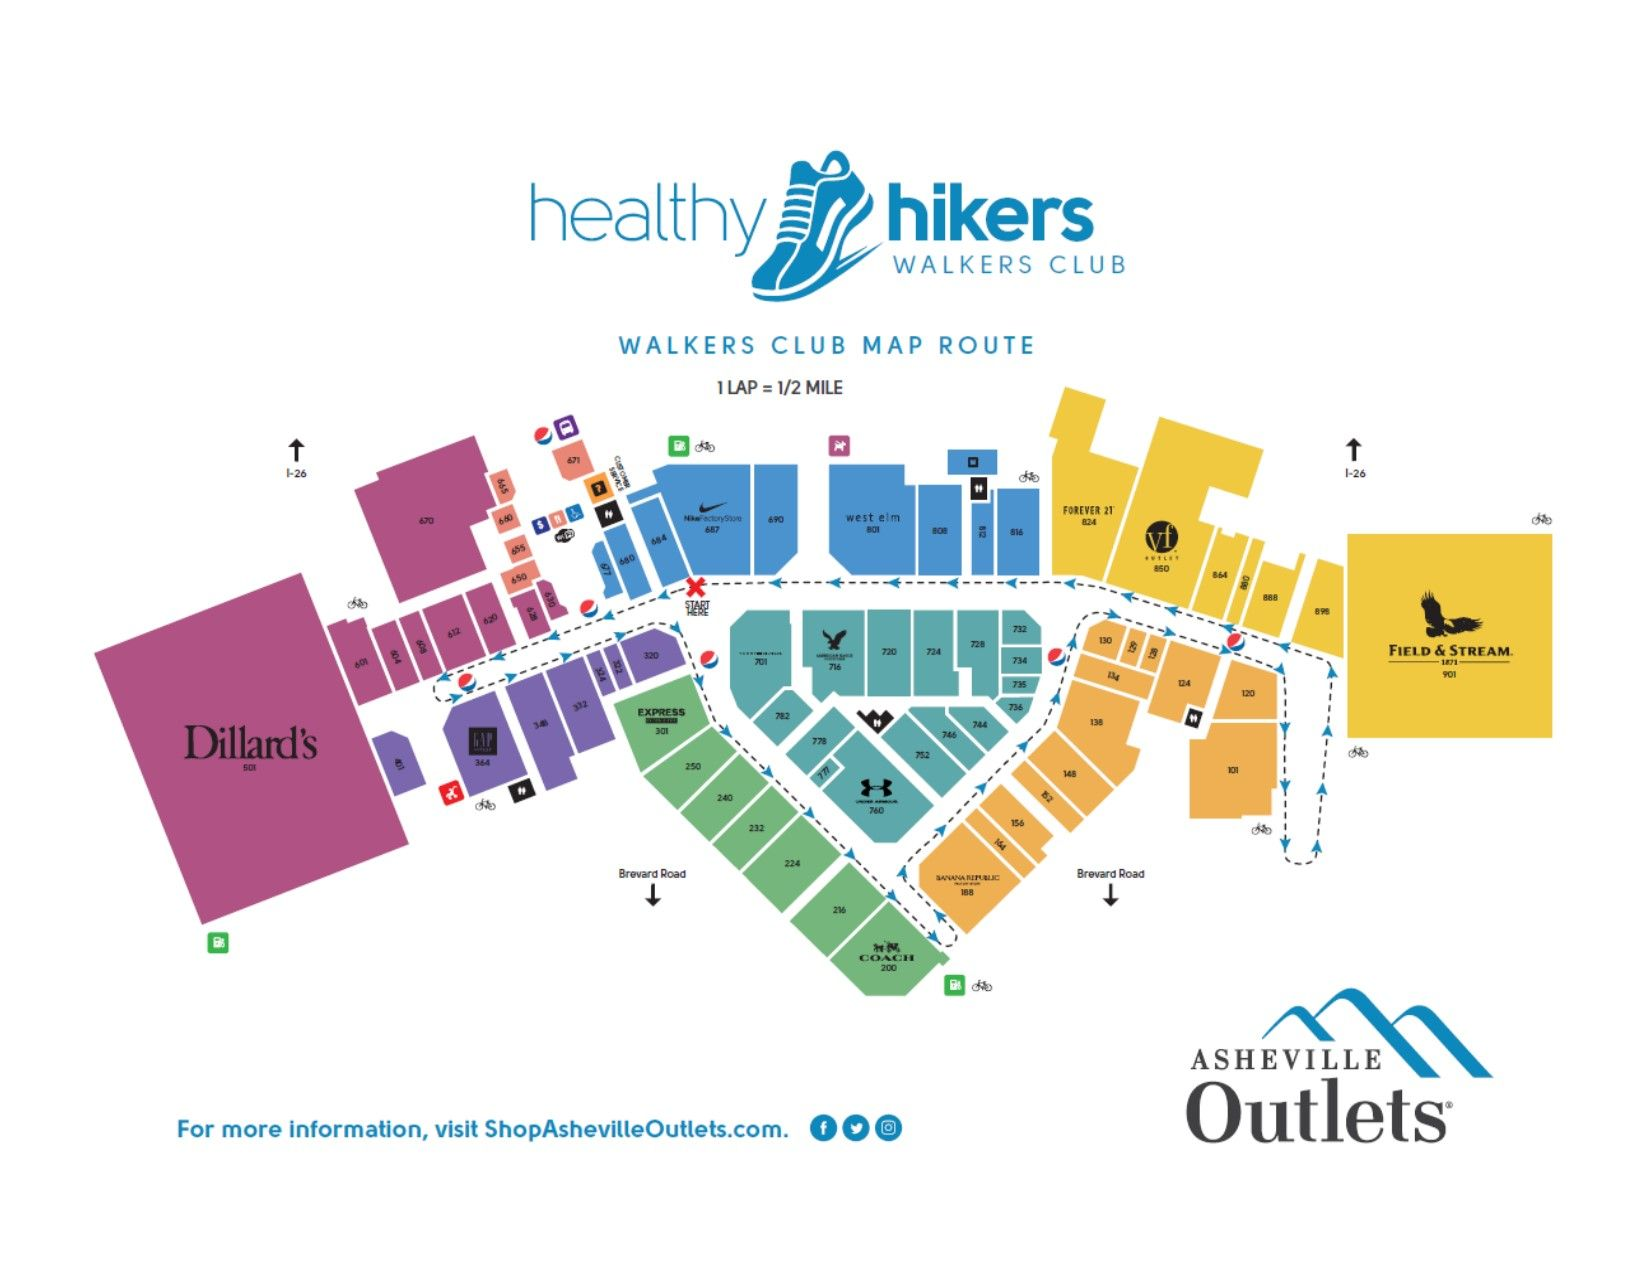 Asheville outlets healthy hikers walkers club